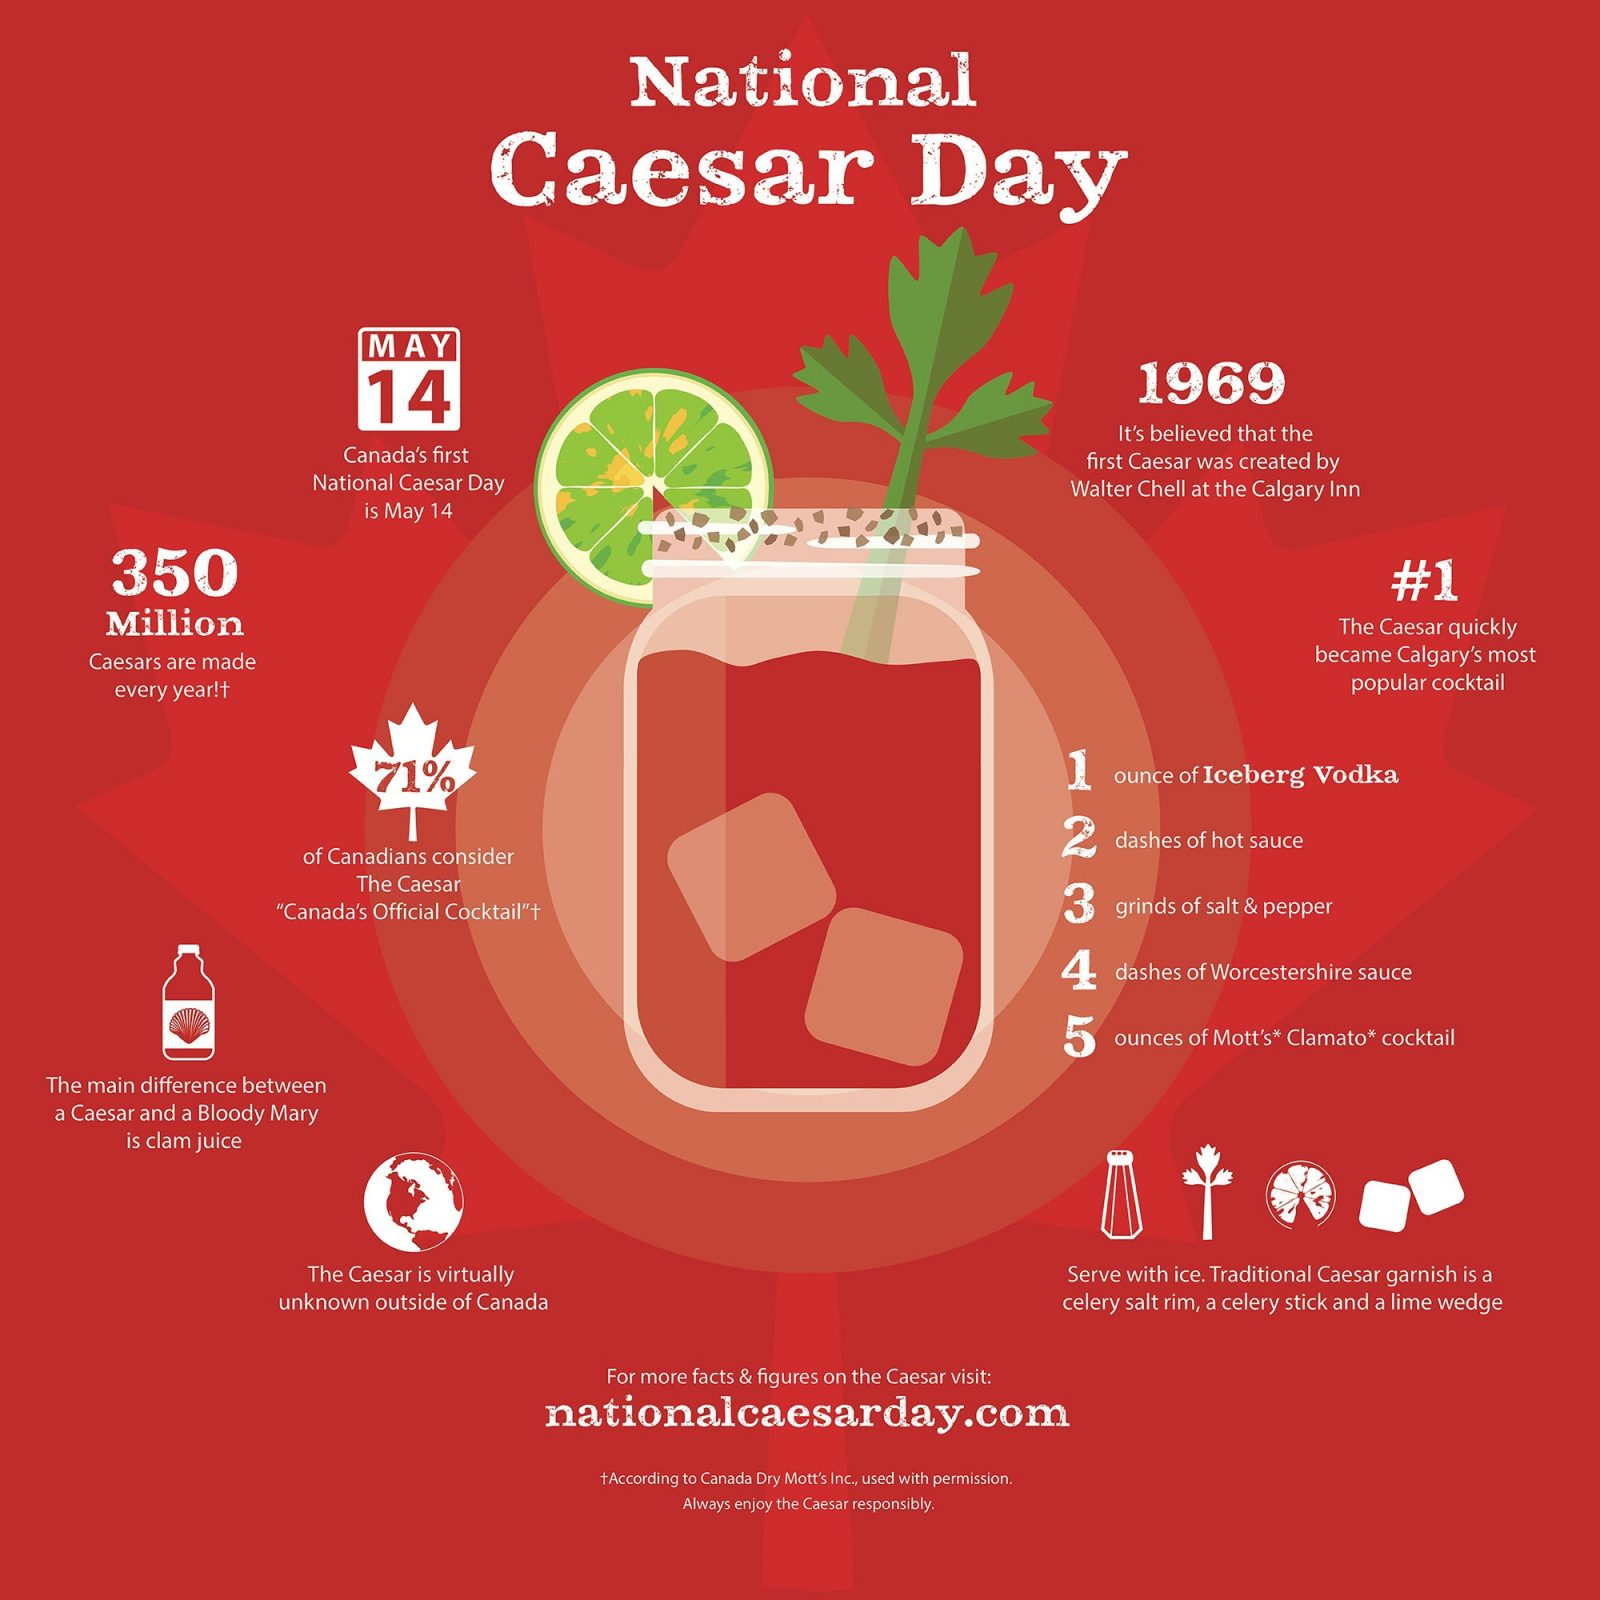 NATIONAL CAESAR DAY - Move over Martinis and Mojitos: Canadians